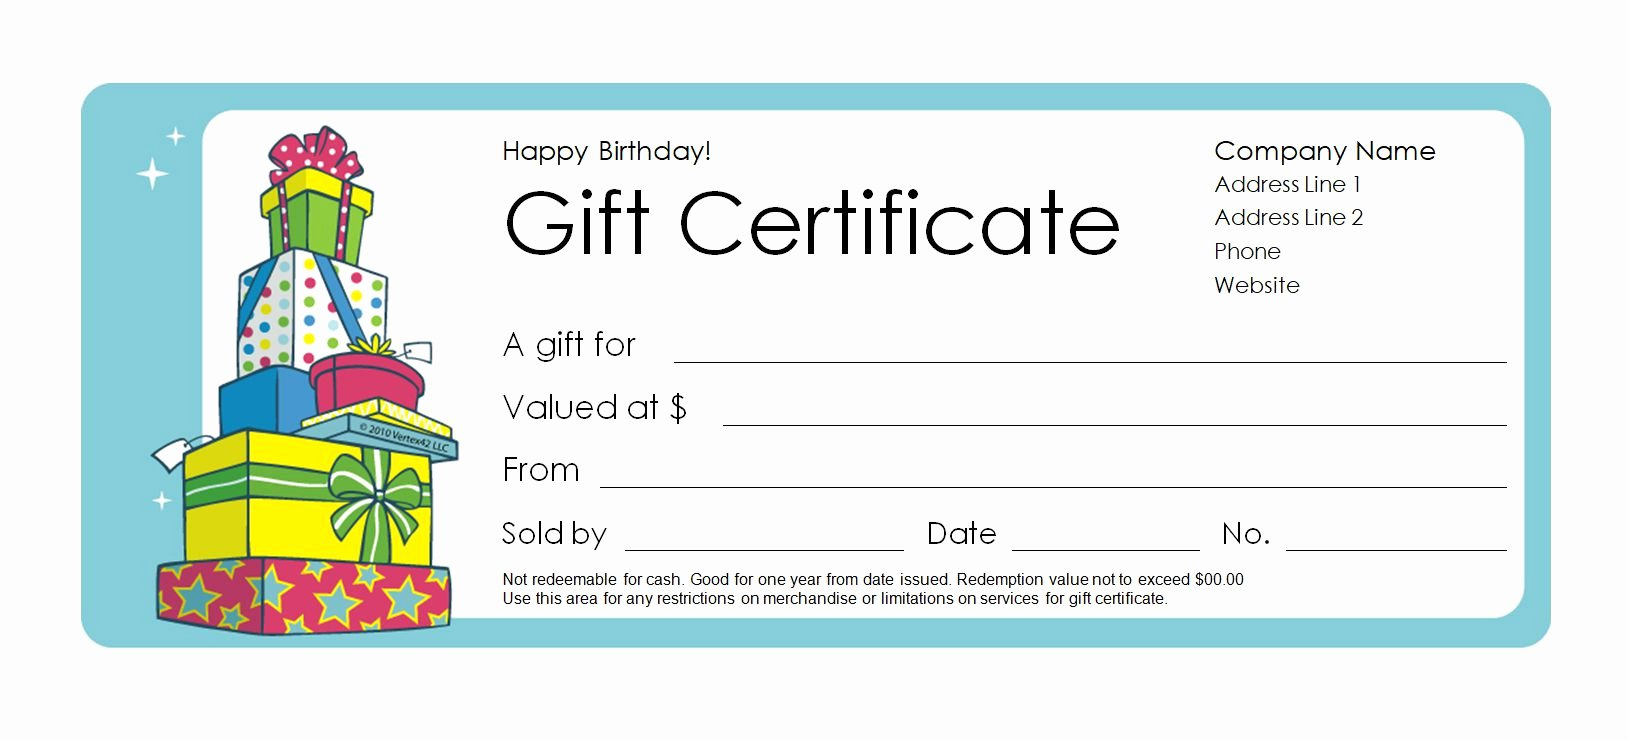 Donation Certificate Template Free Best Of 173 Free Gift Certificate Templates You Can Customize